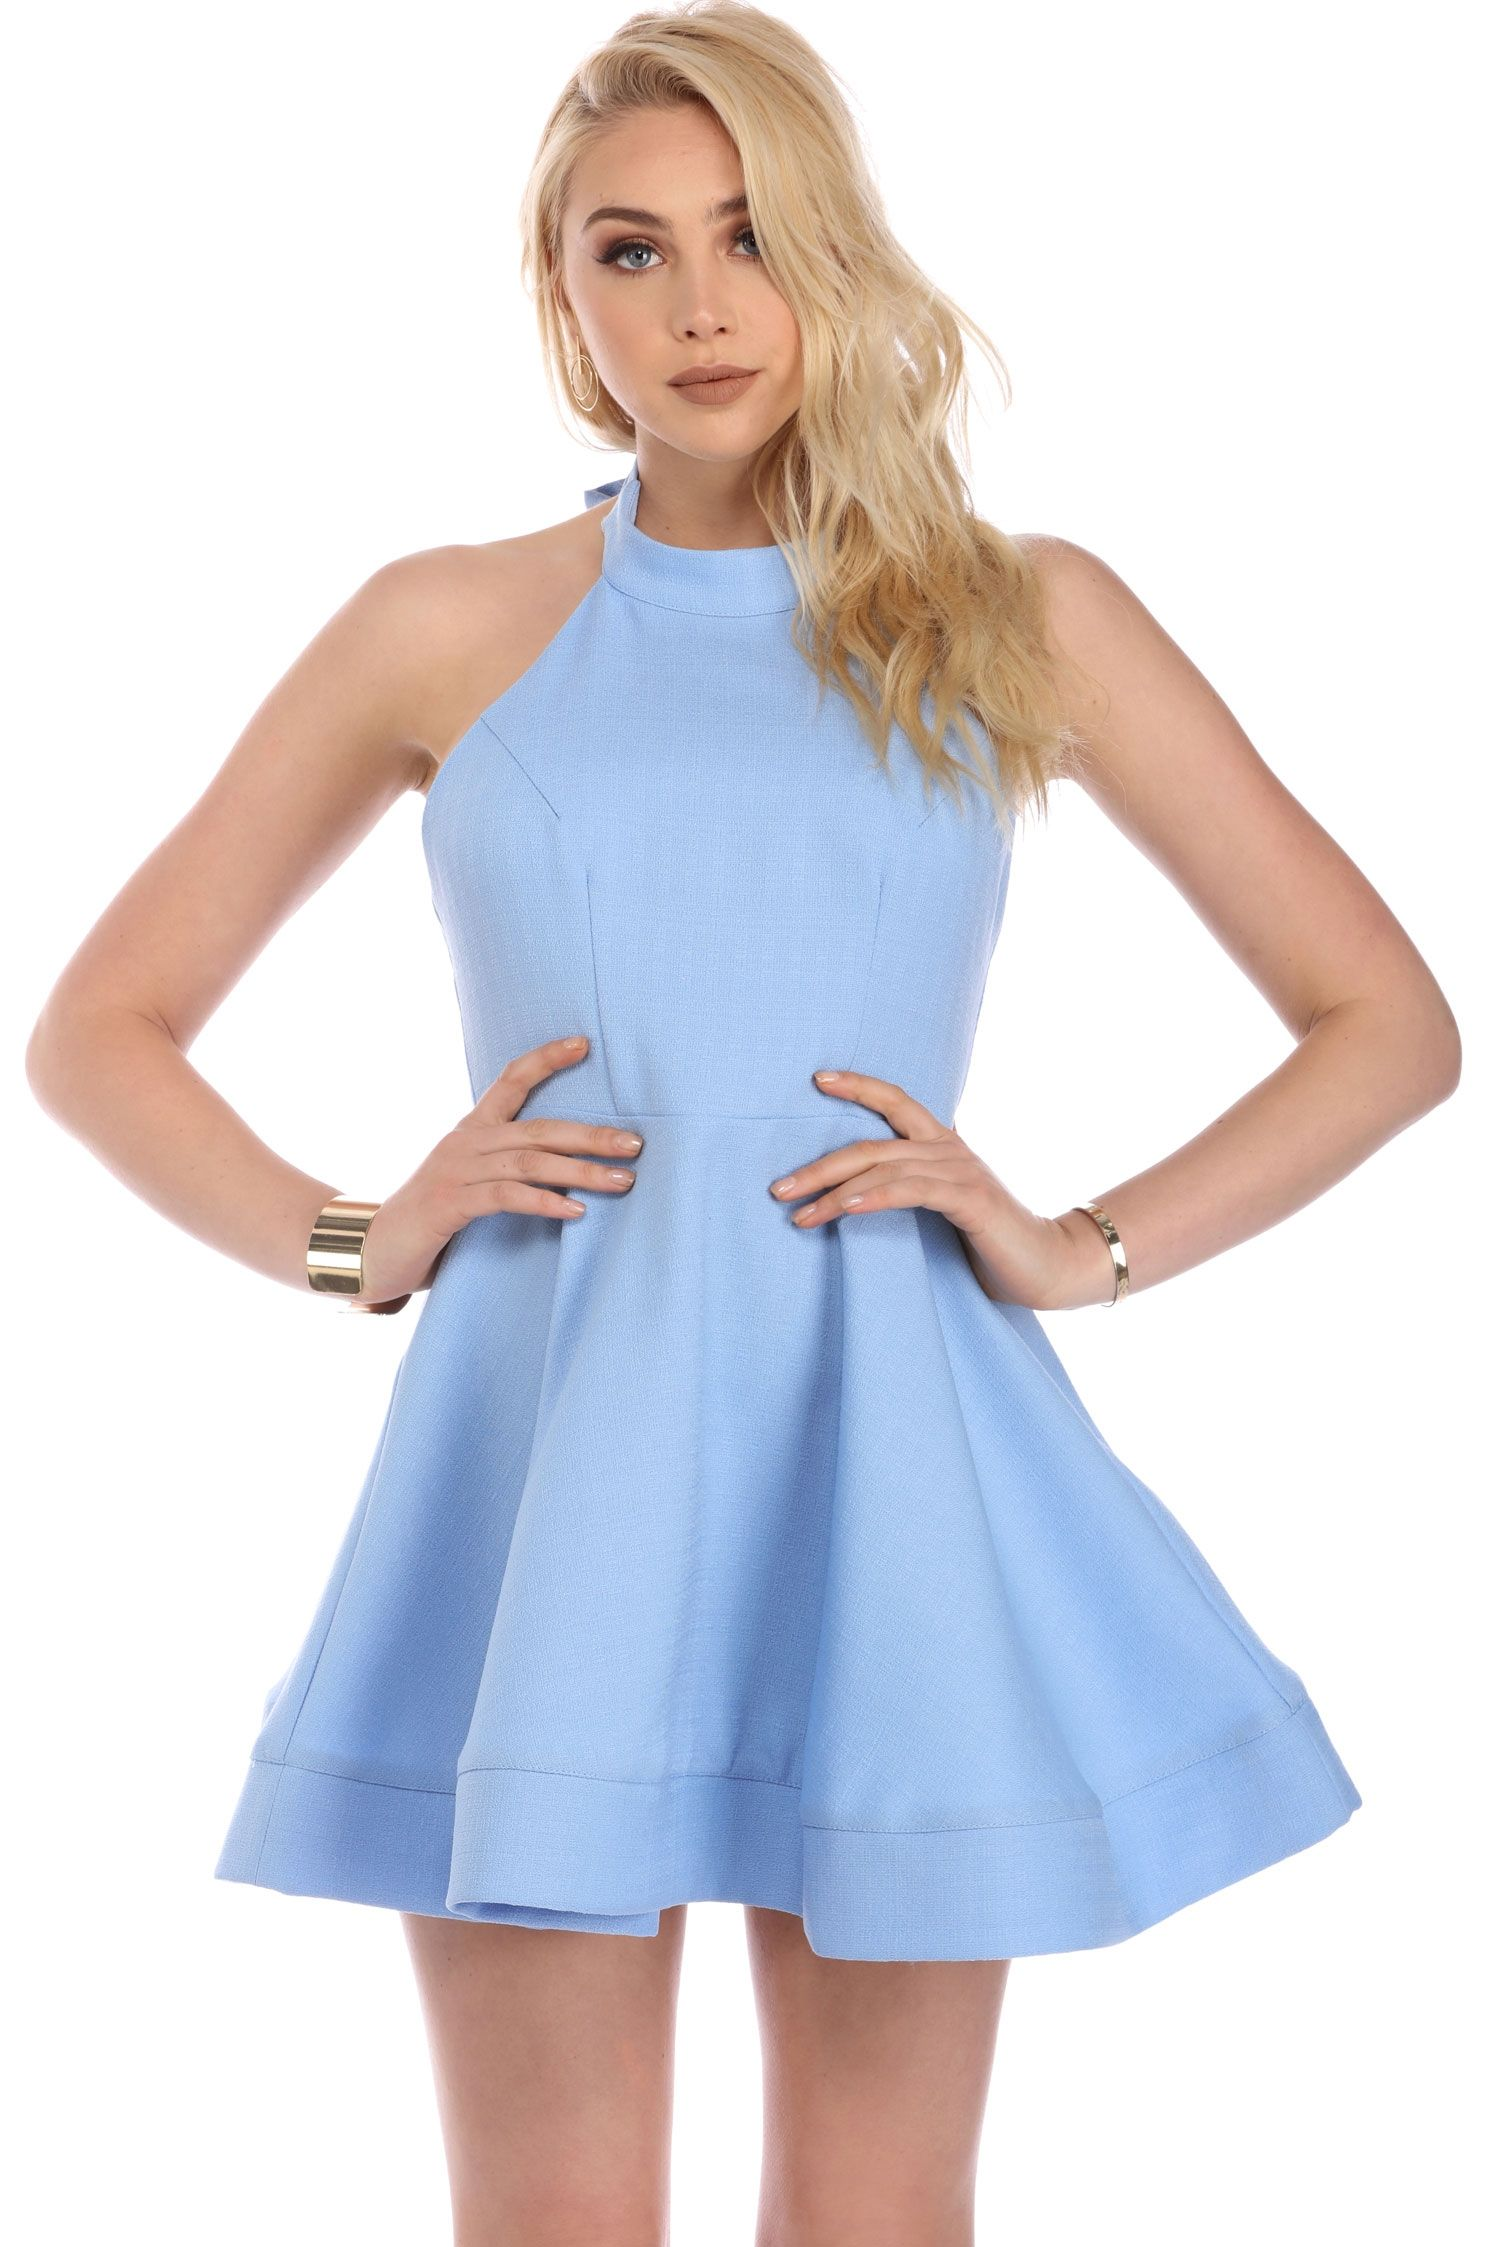 5001c385f5 Light Blue Bow Back Skater Dress